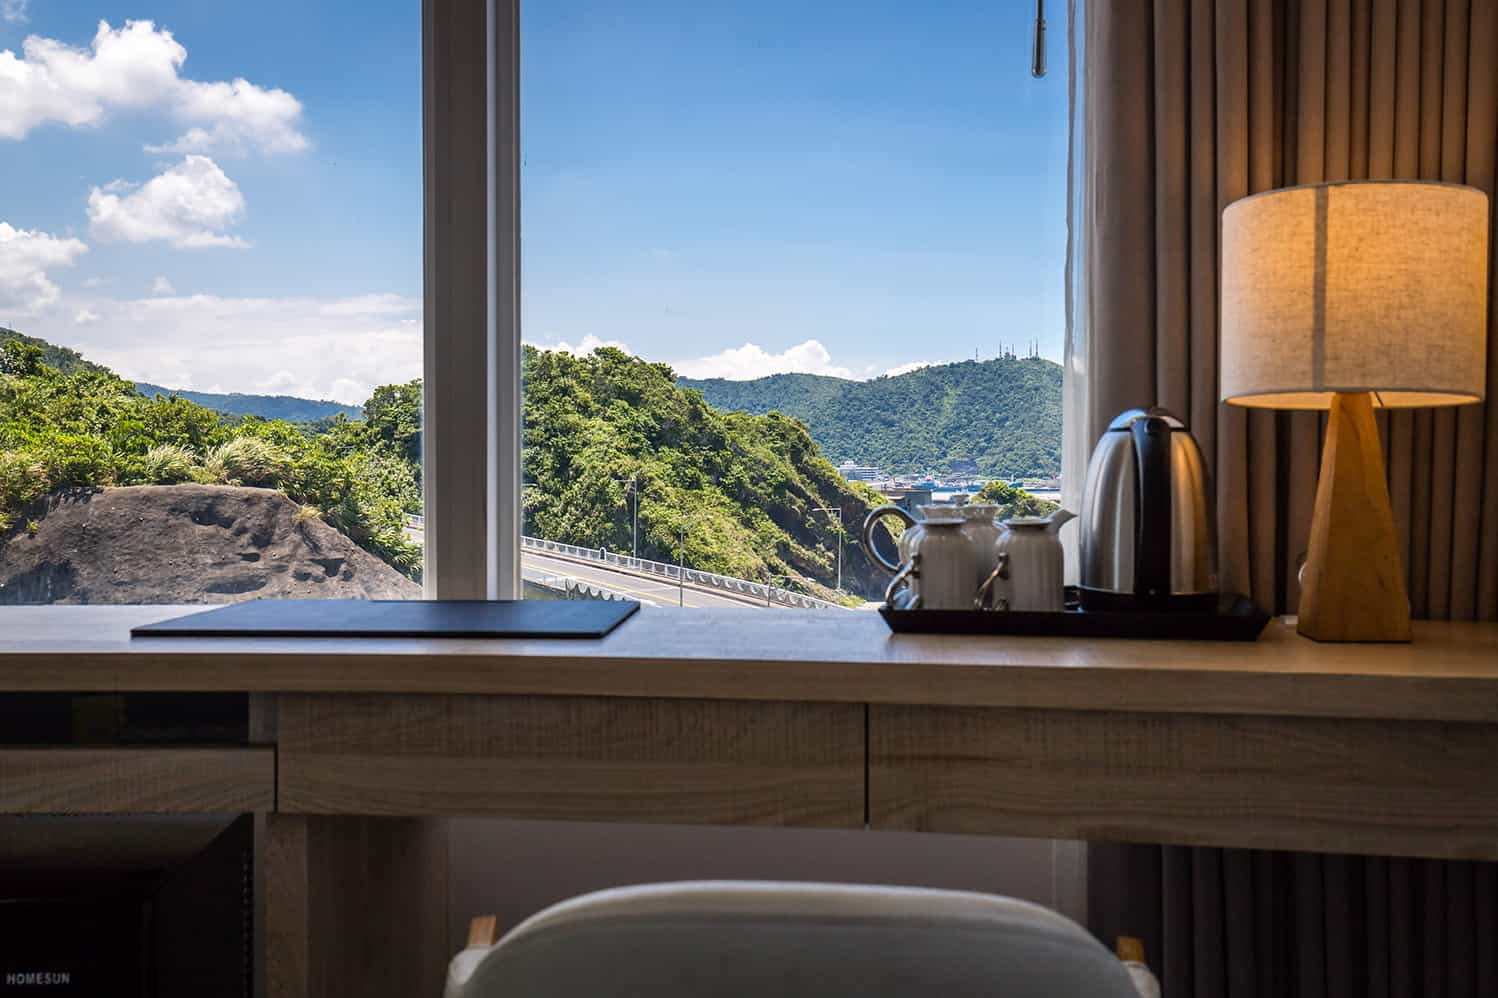 Brighthouse Ocean Mountain View Room 09